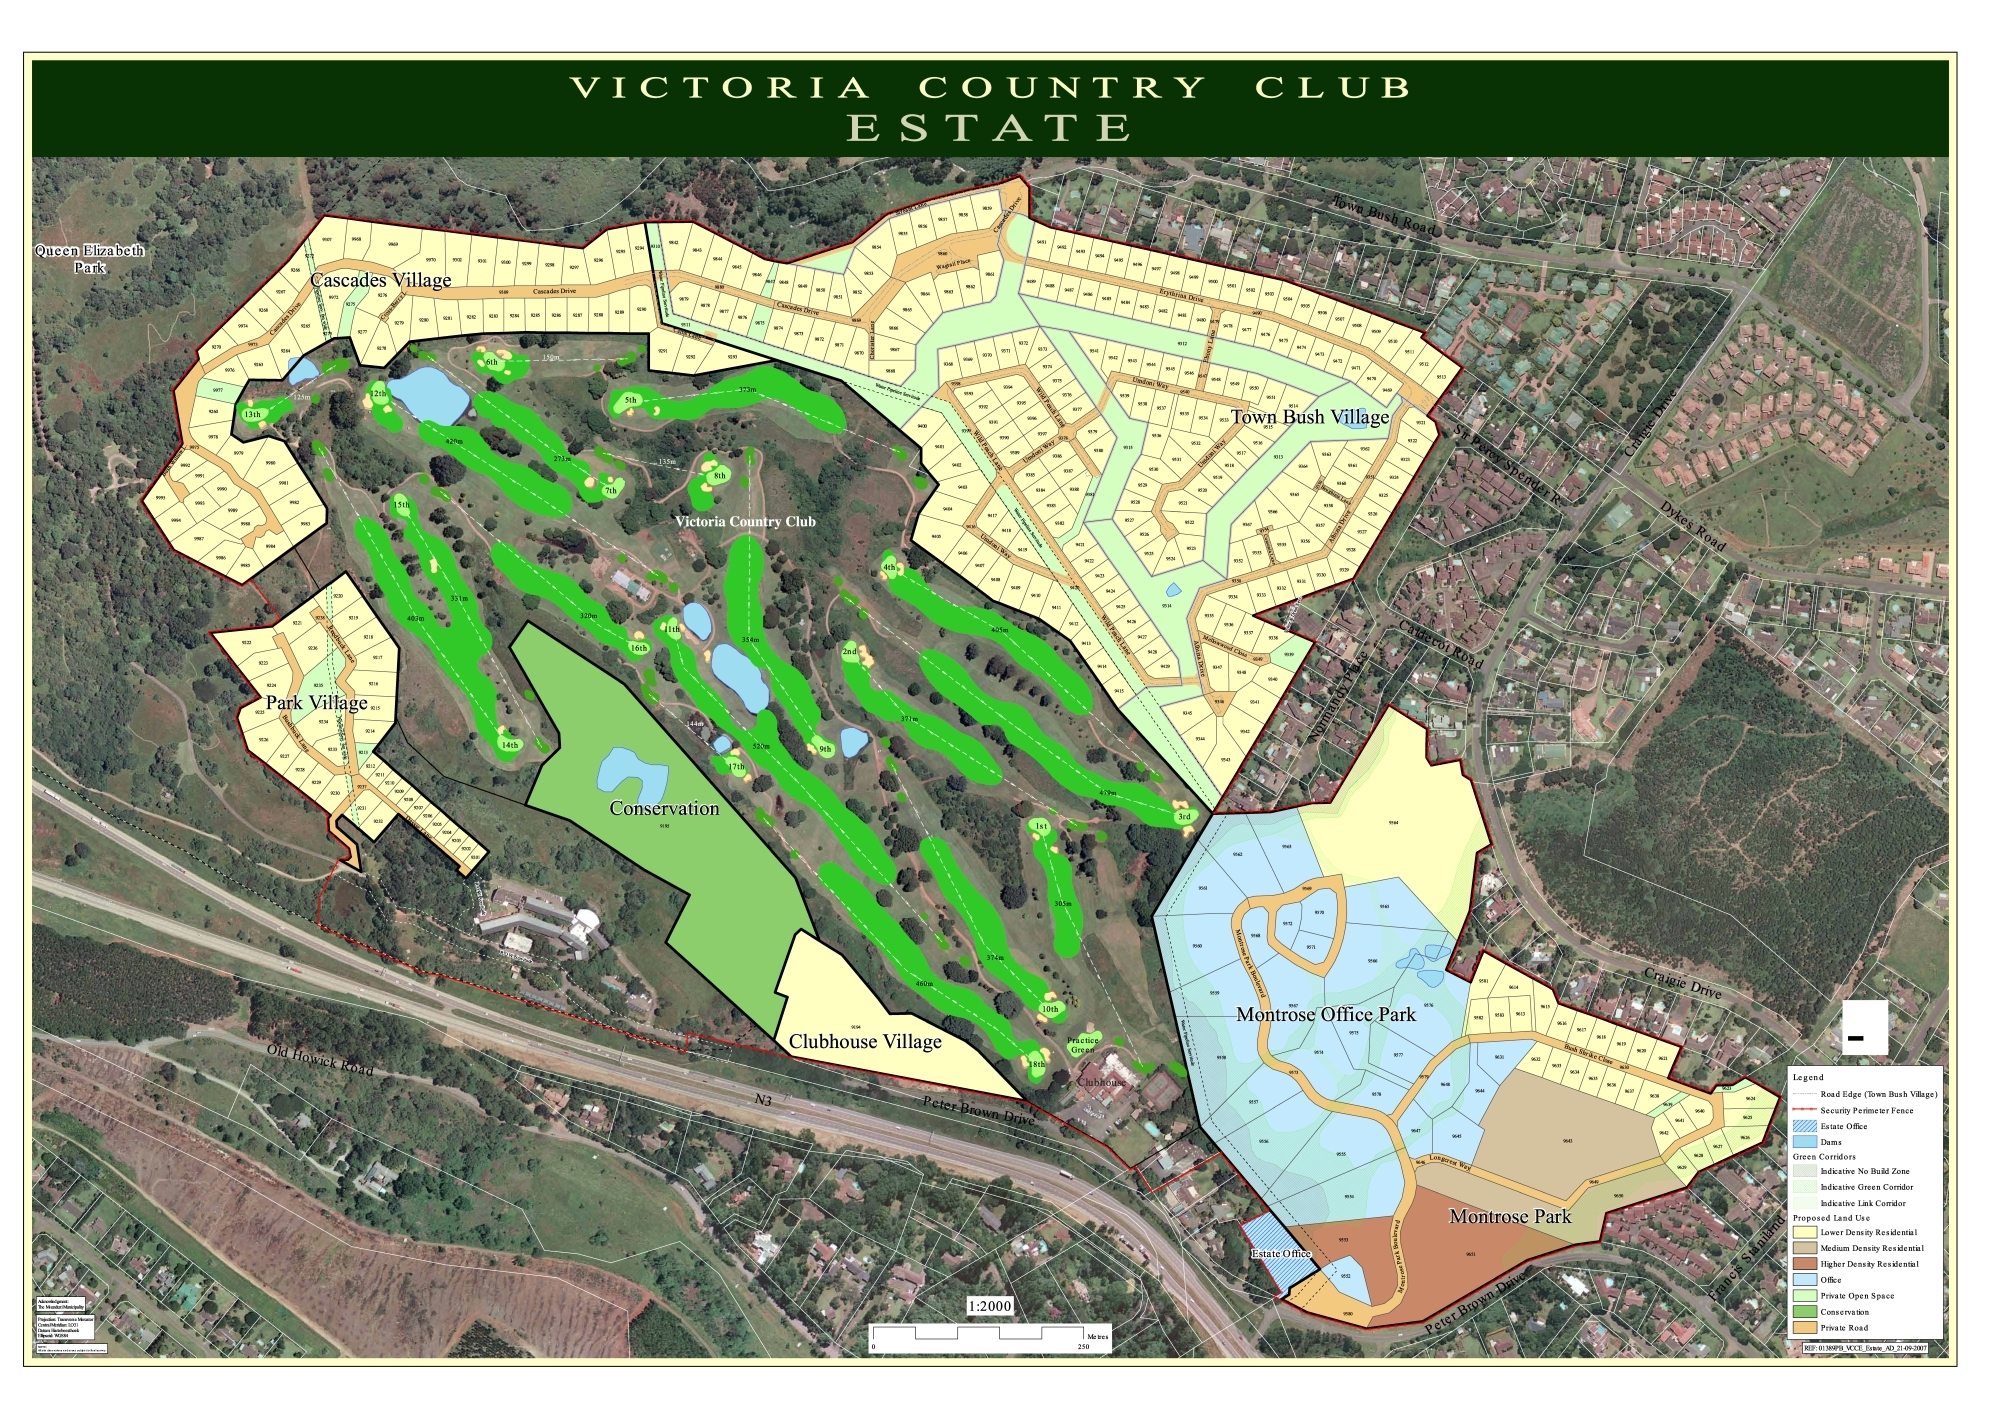 VCCE Estate Map 13082014